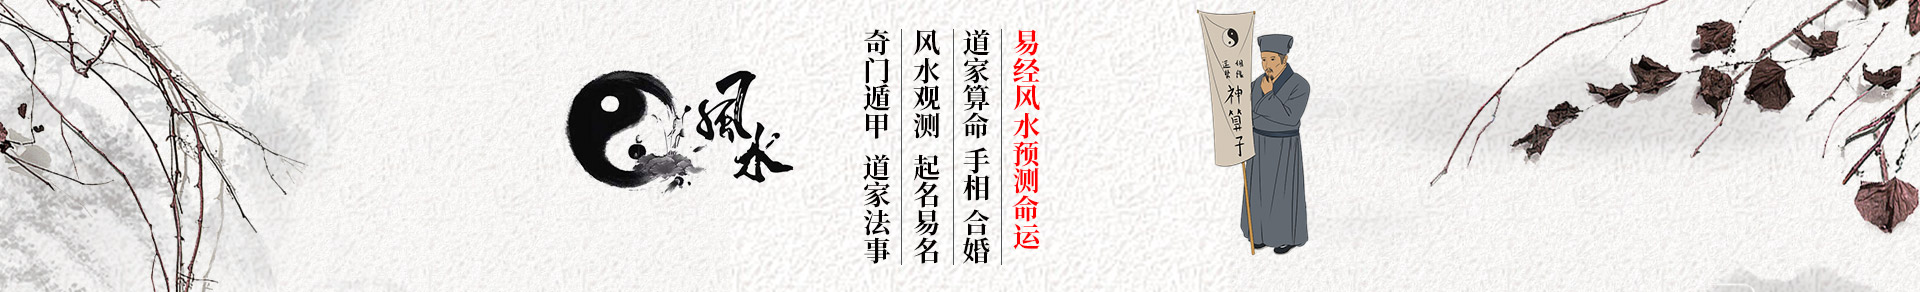 http://www.chenhongyou.com/data/images/slide/20190911181849_929.jpg